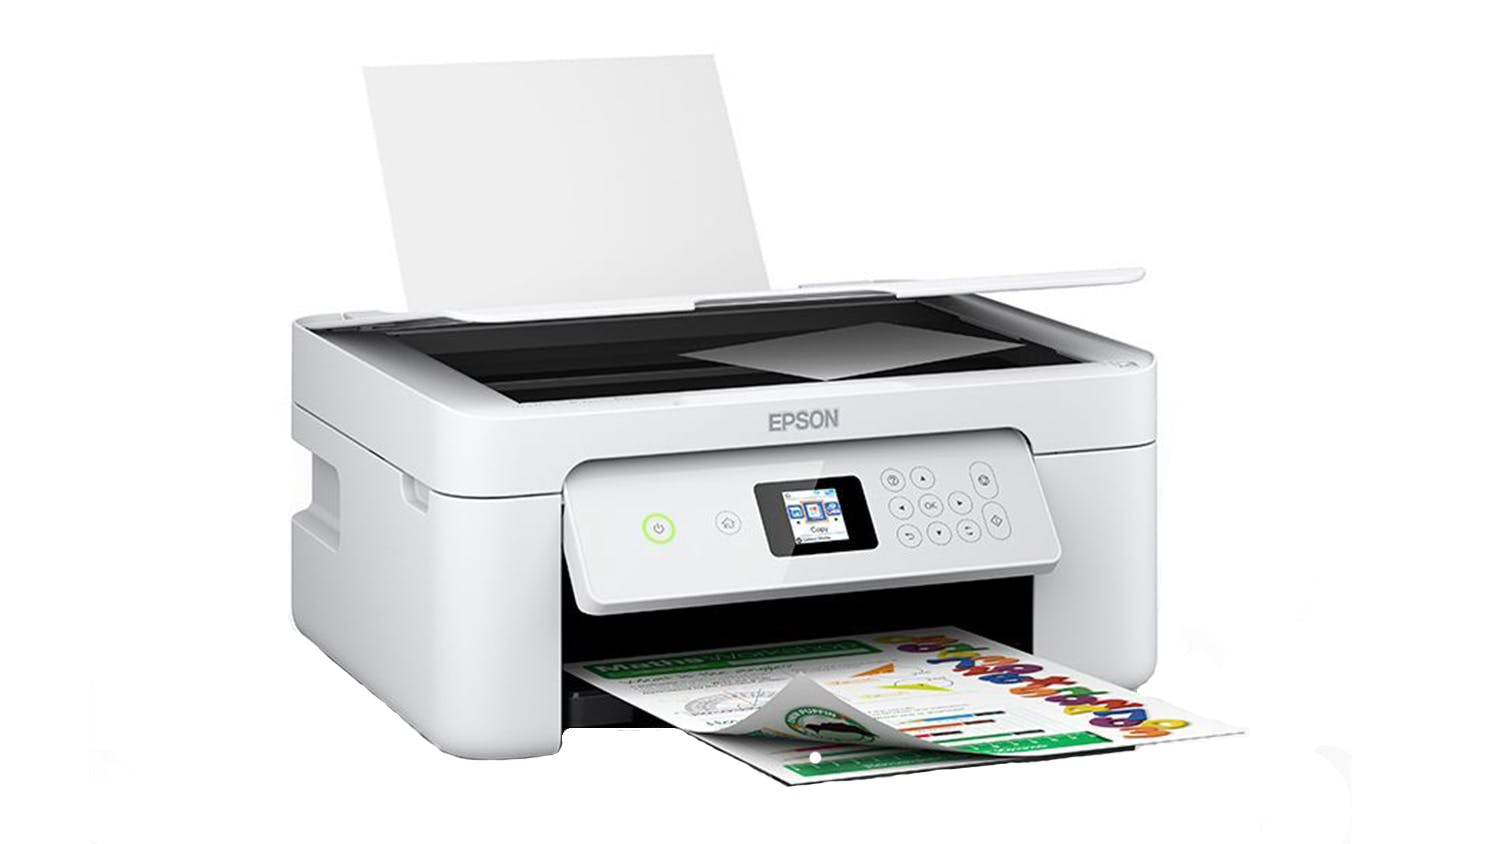 Epson XP-3105 All-in-One Printer